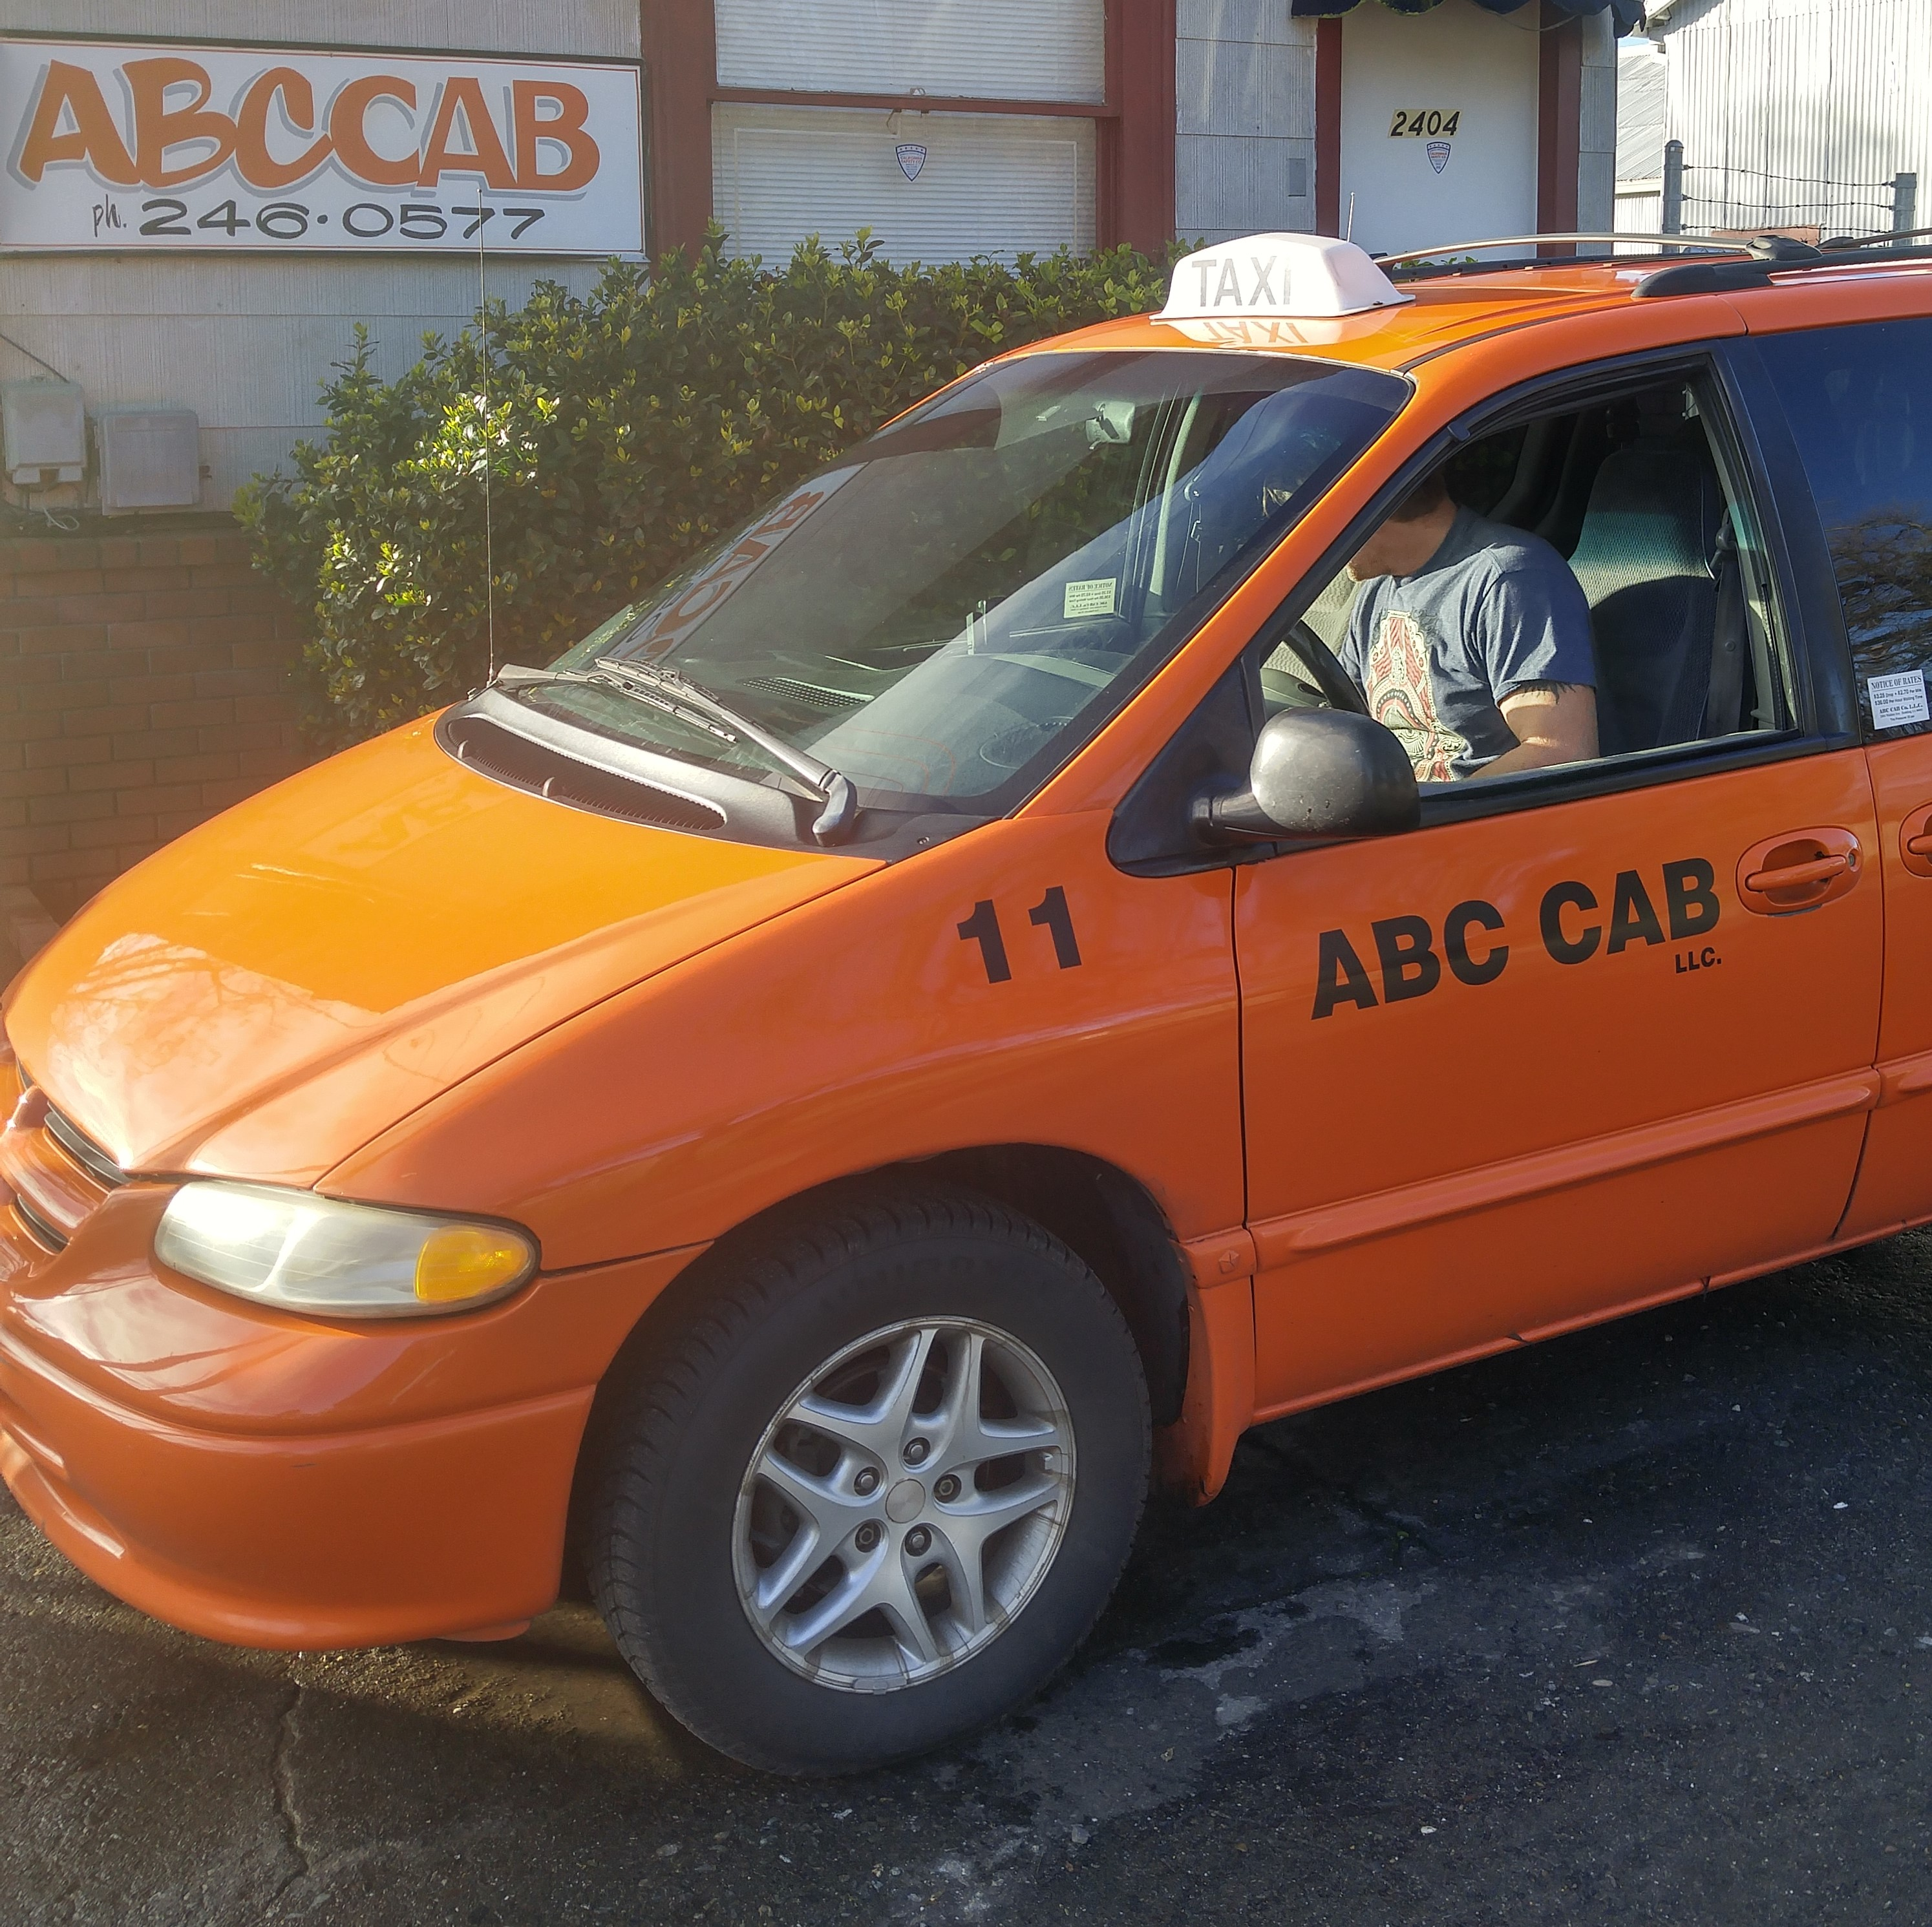 ABC Taxi Cab Co Redding CA YP